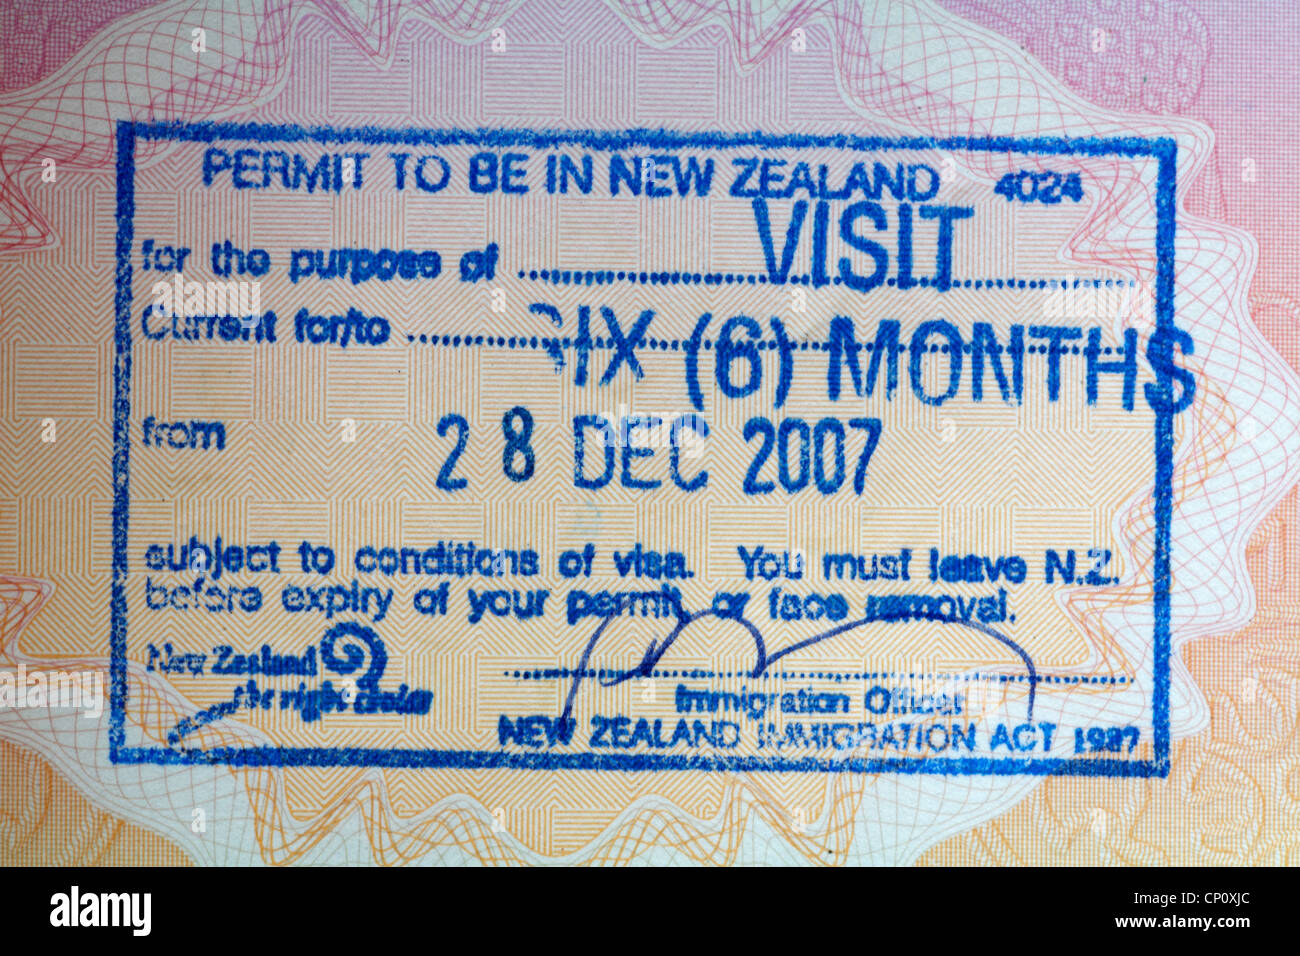 new zealand photo passport guide